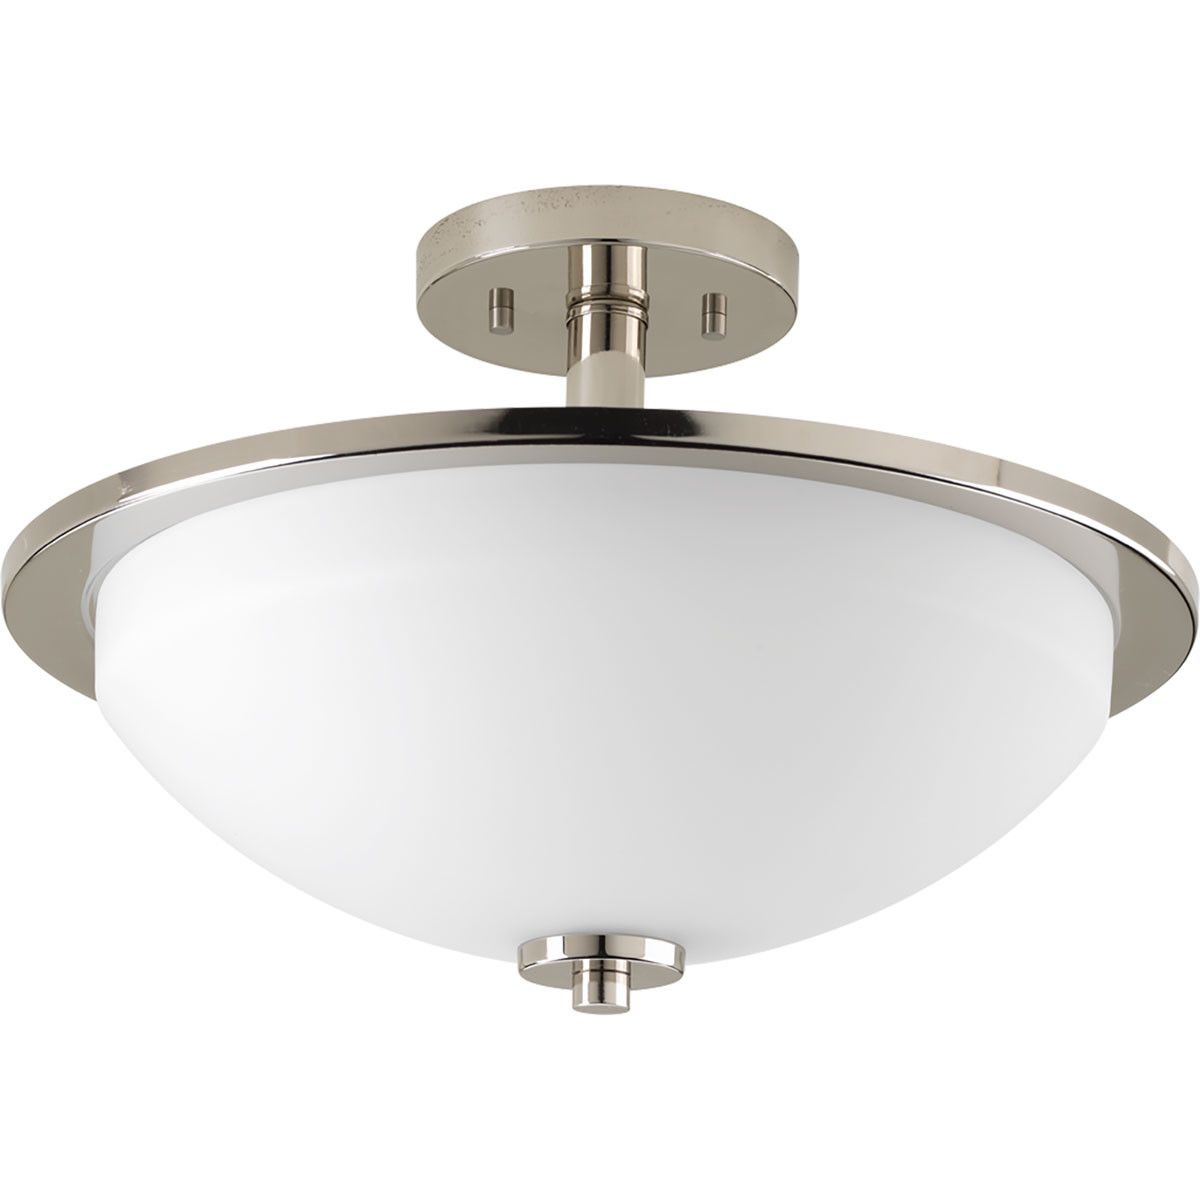 Replay 2 Light Semi Flush Mount